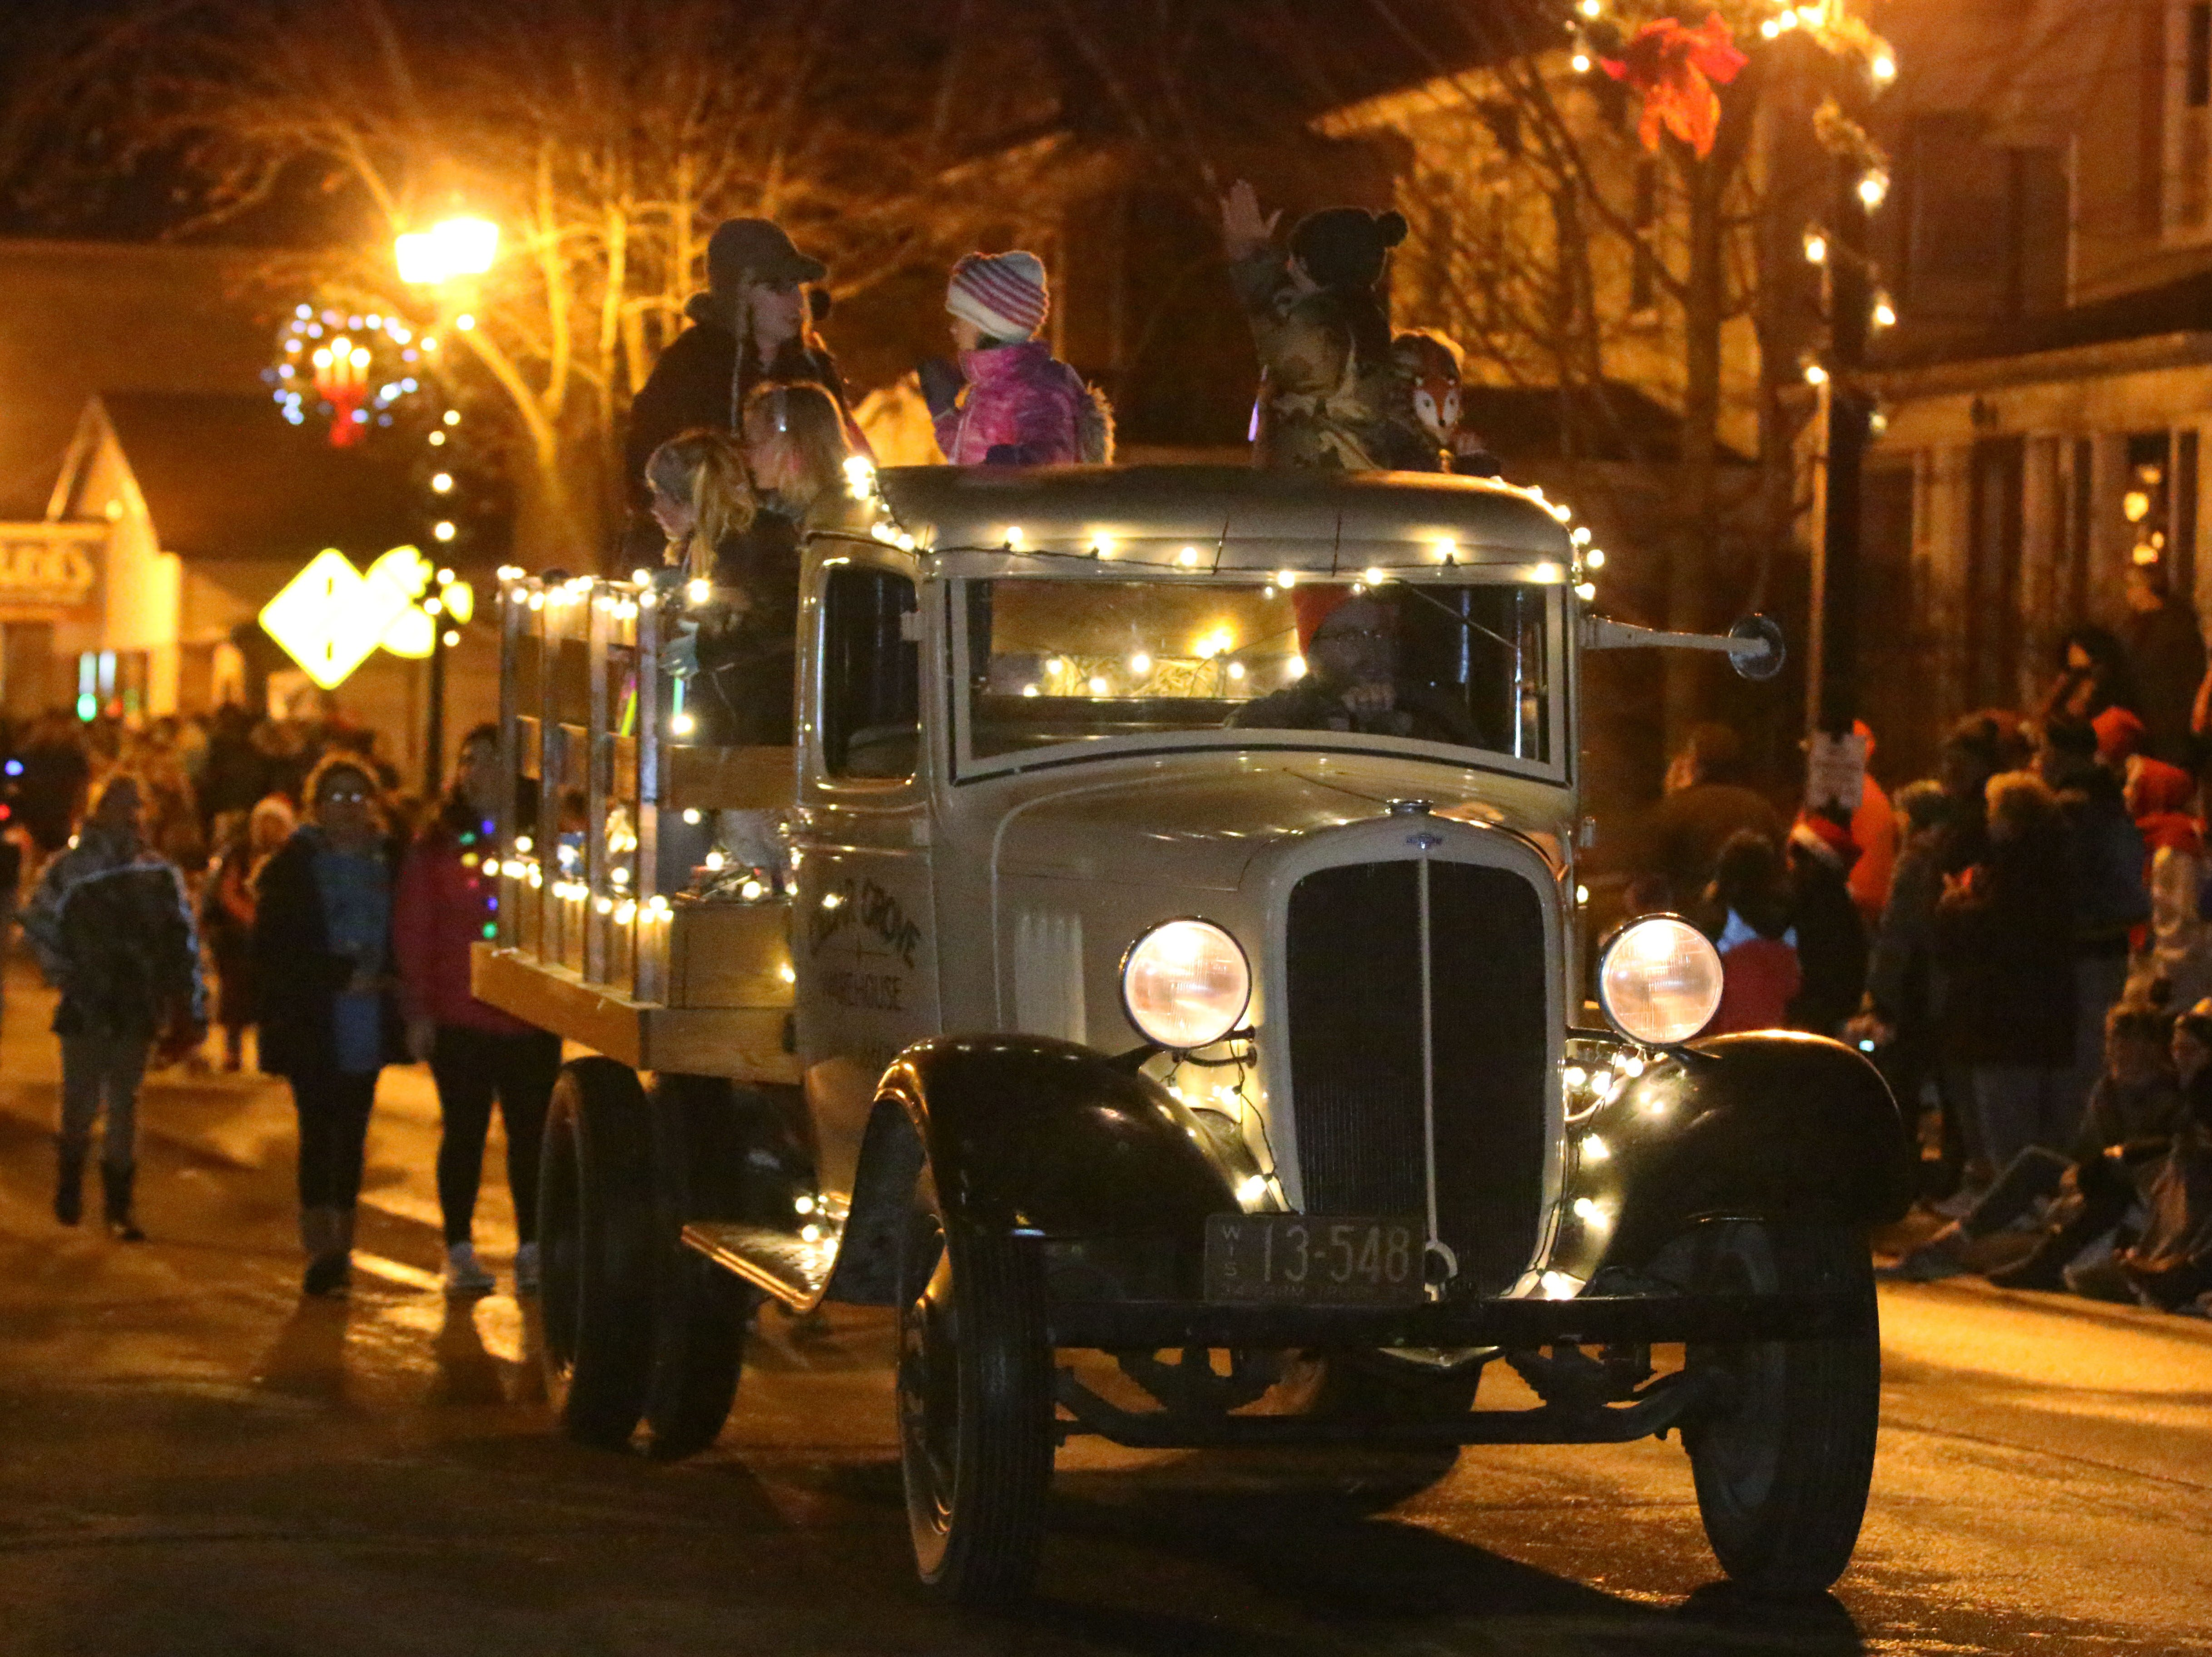 A scene from the Oostburg Christmas Parade, Saturday, November 24, 2018, in Oostburg, Wis.